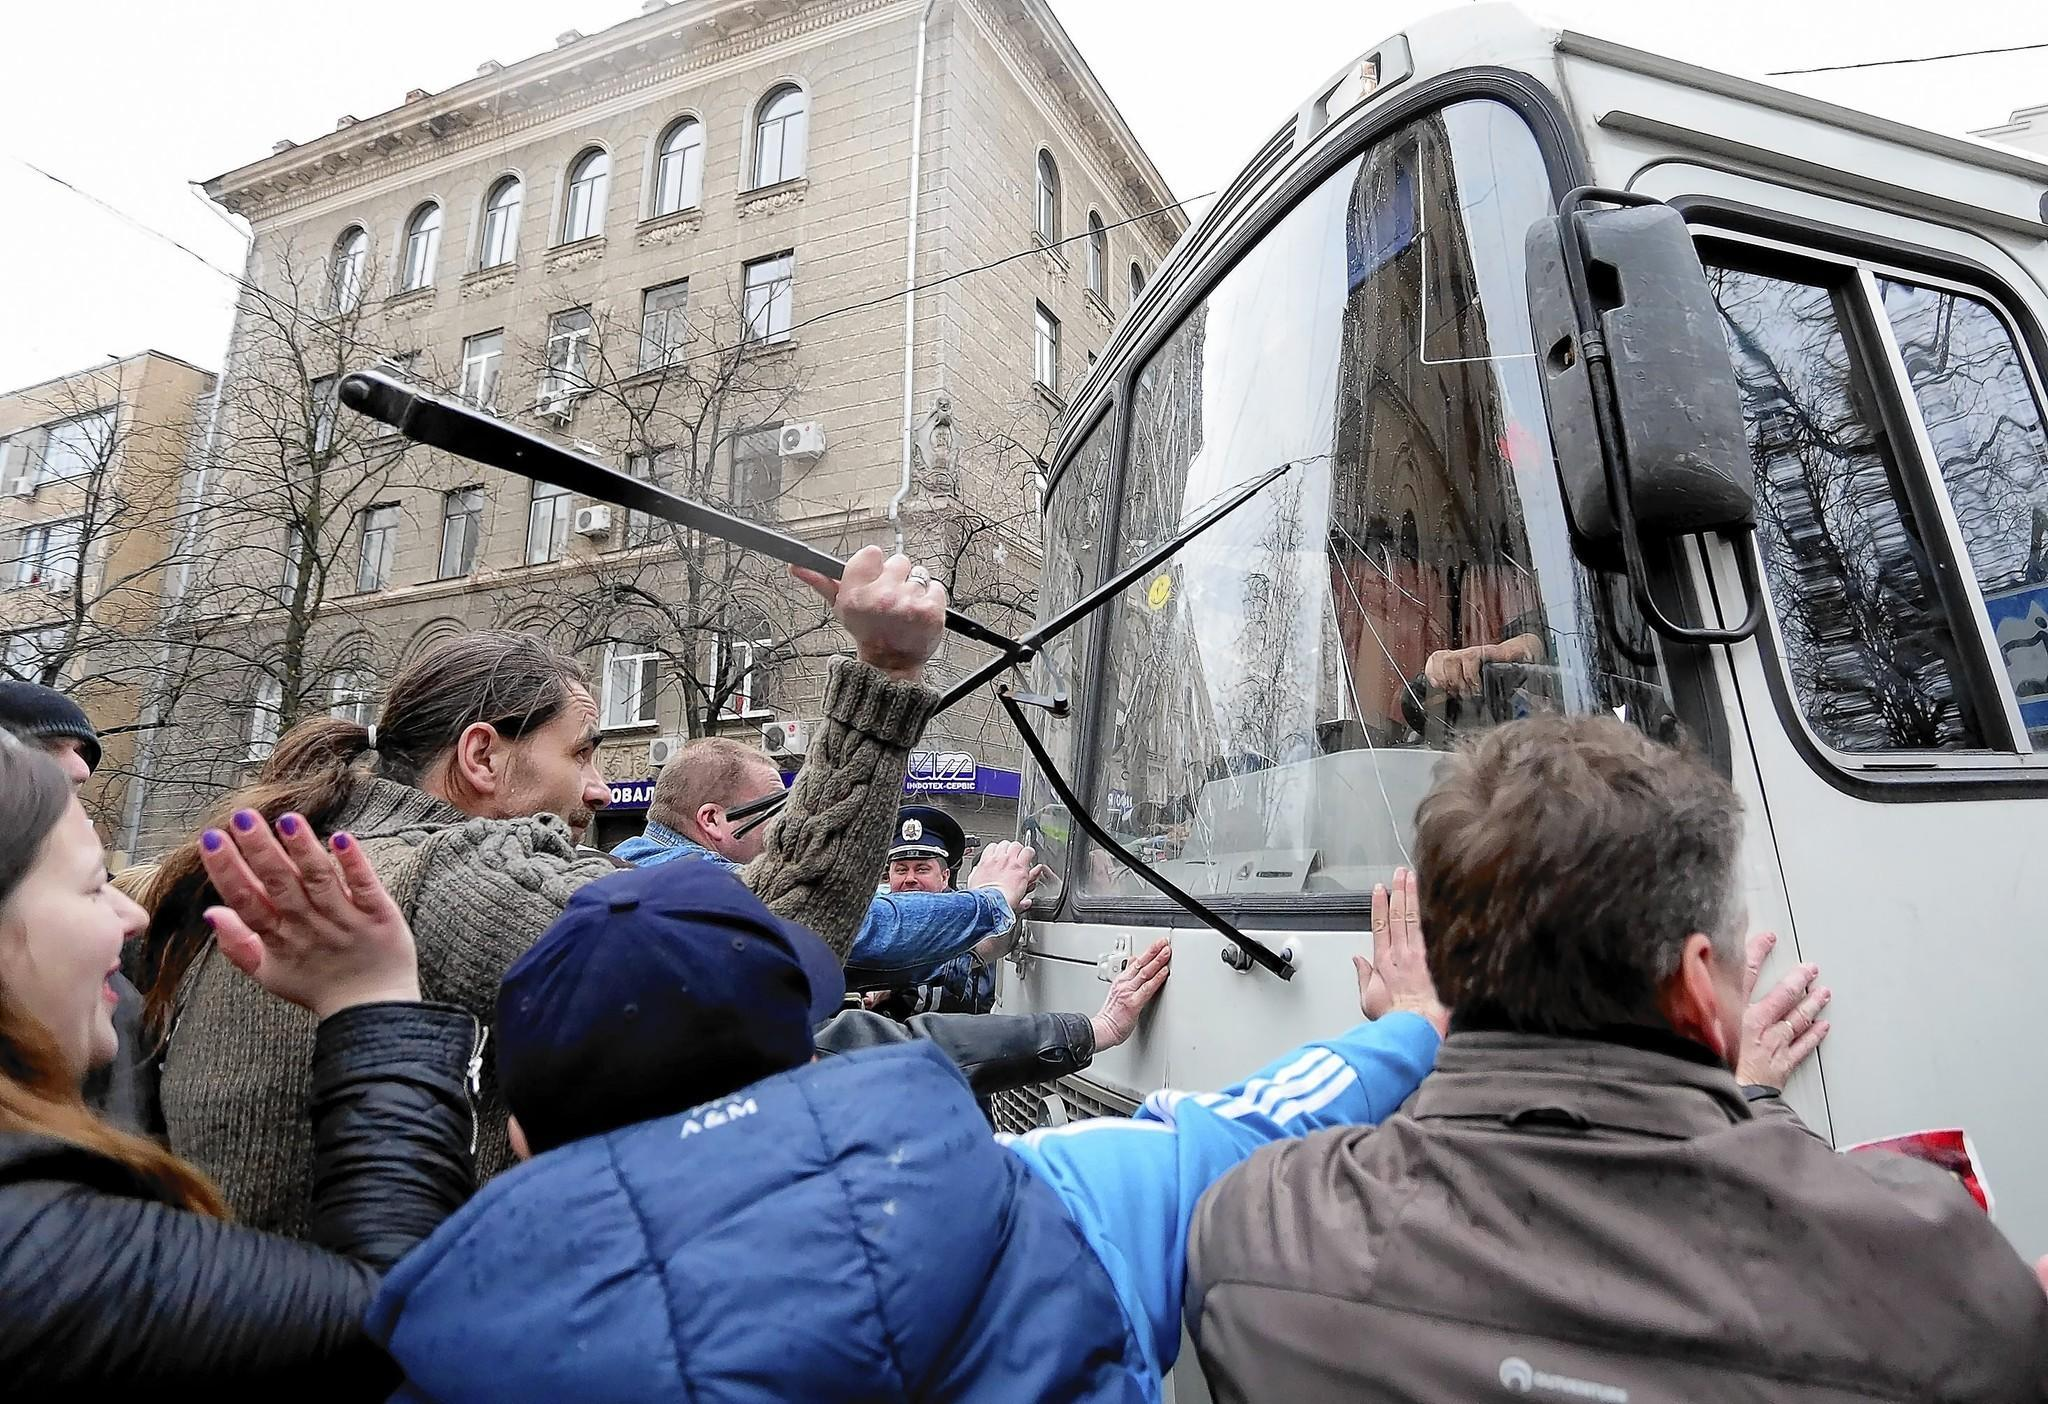 Pro-Russia demonstrators attack a police bus in Kharkiv, in eastern Ukraine.